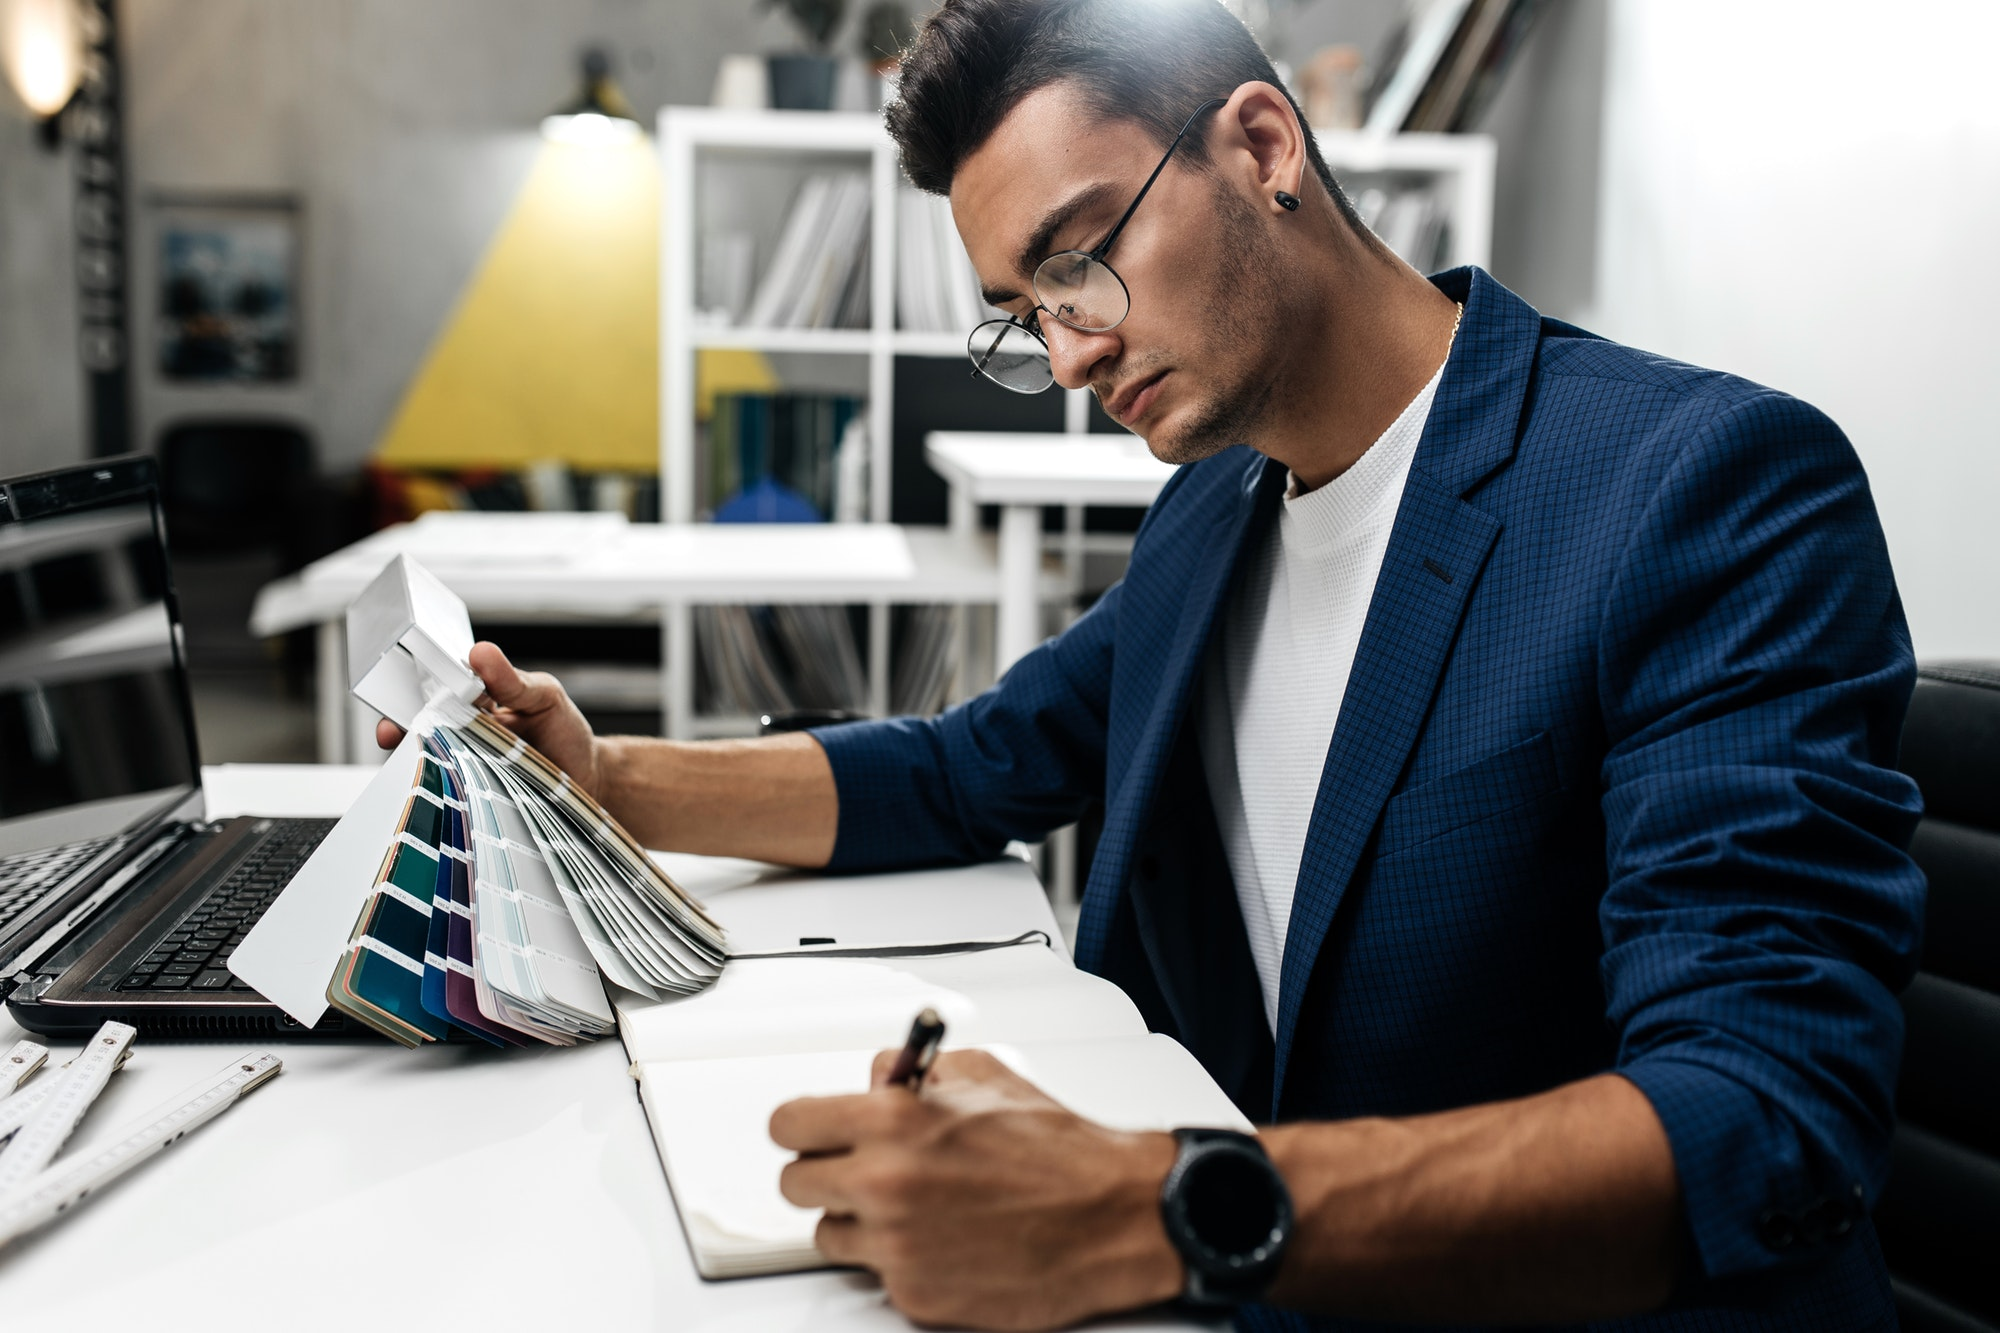 The architect in glasses and in a blue jacket is working with catalog of colors on the desk in the